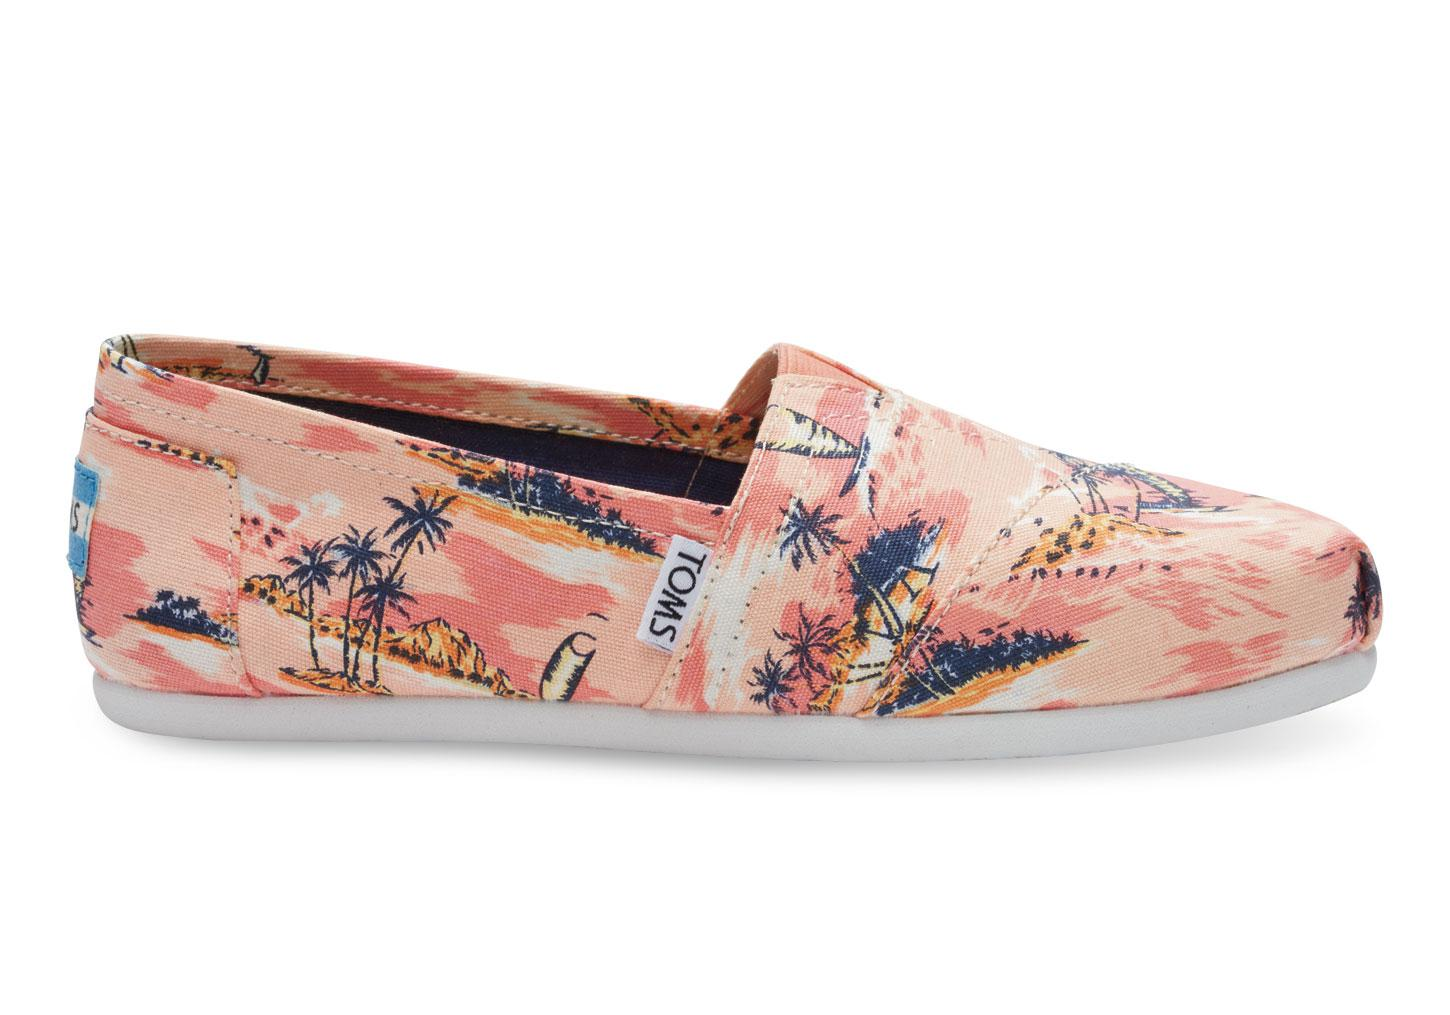 28b200fea5a Lyst - TOMS Coral Canvas Printed Palms Women s Classics in Pink